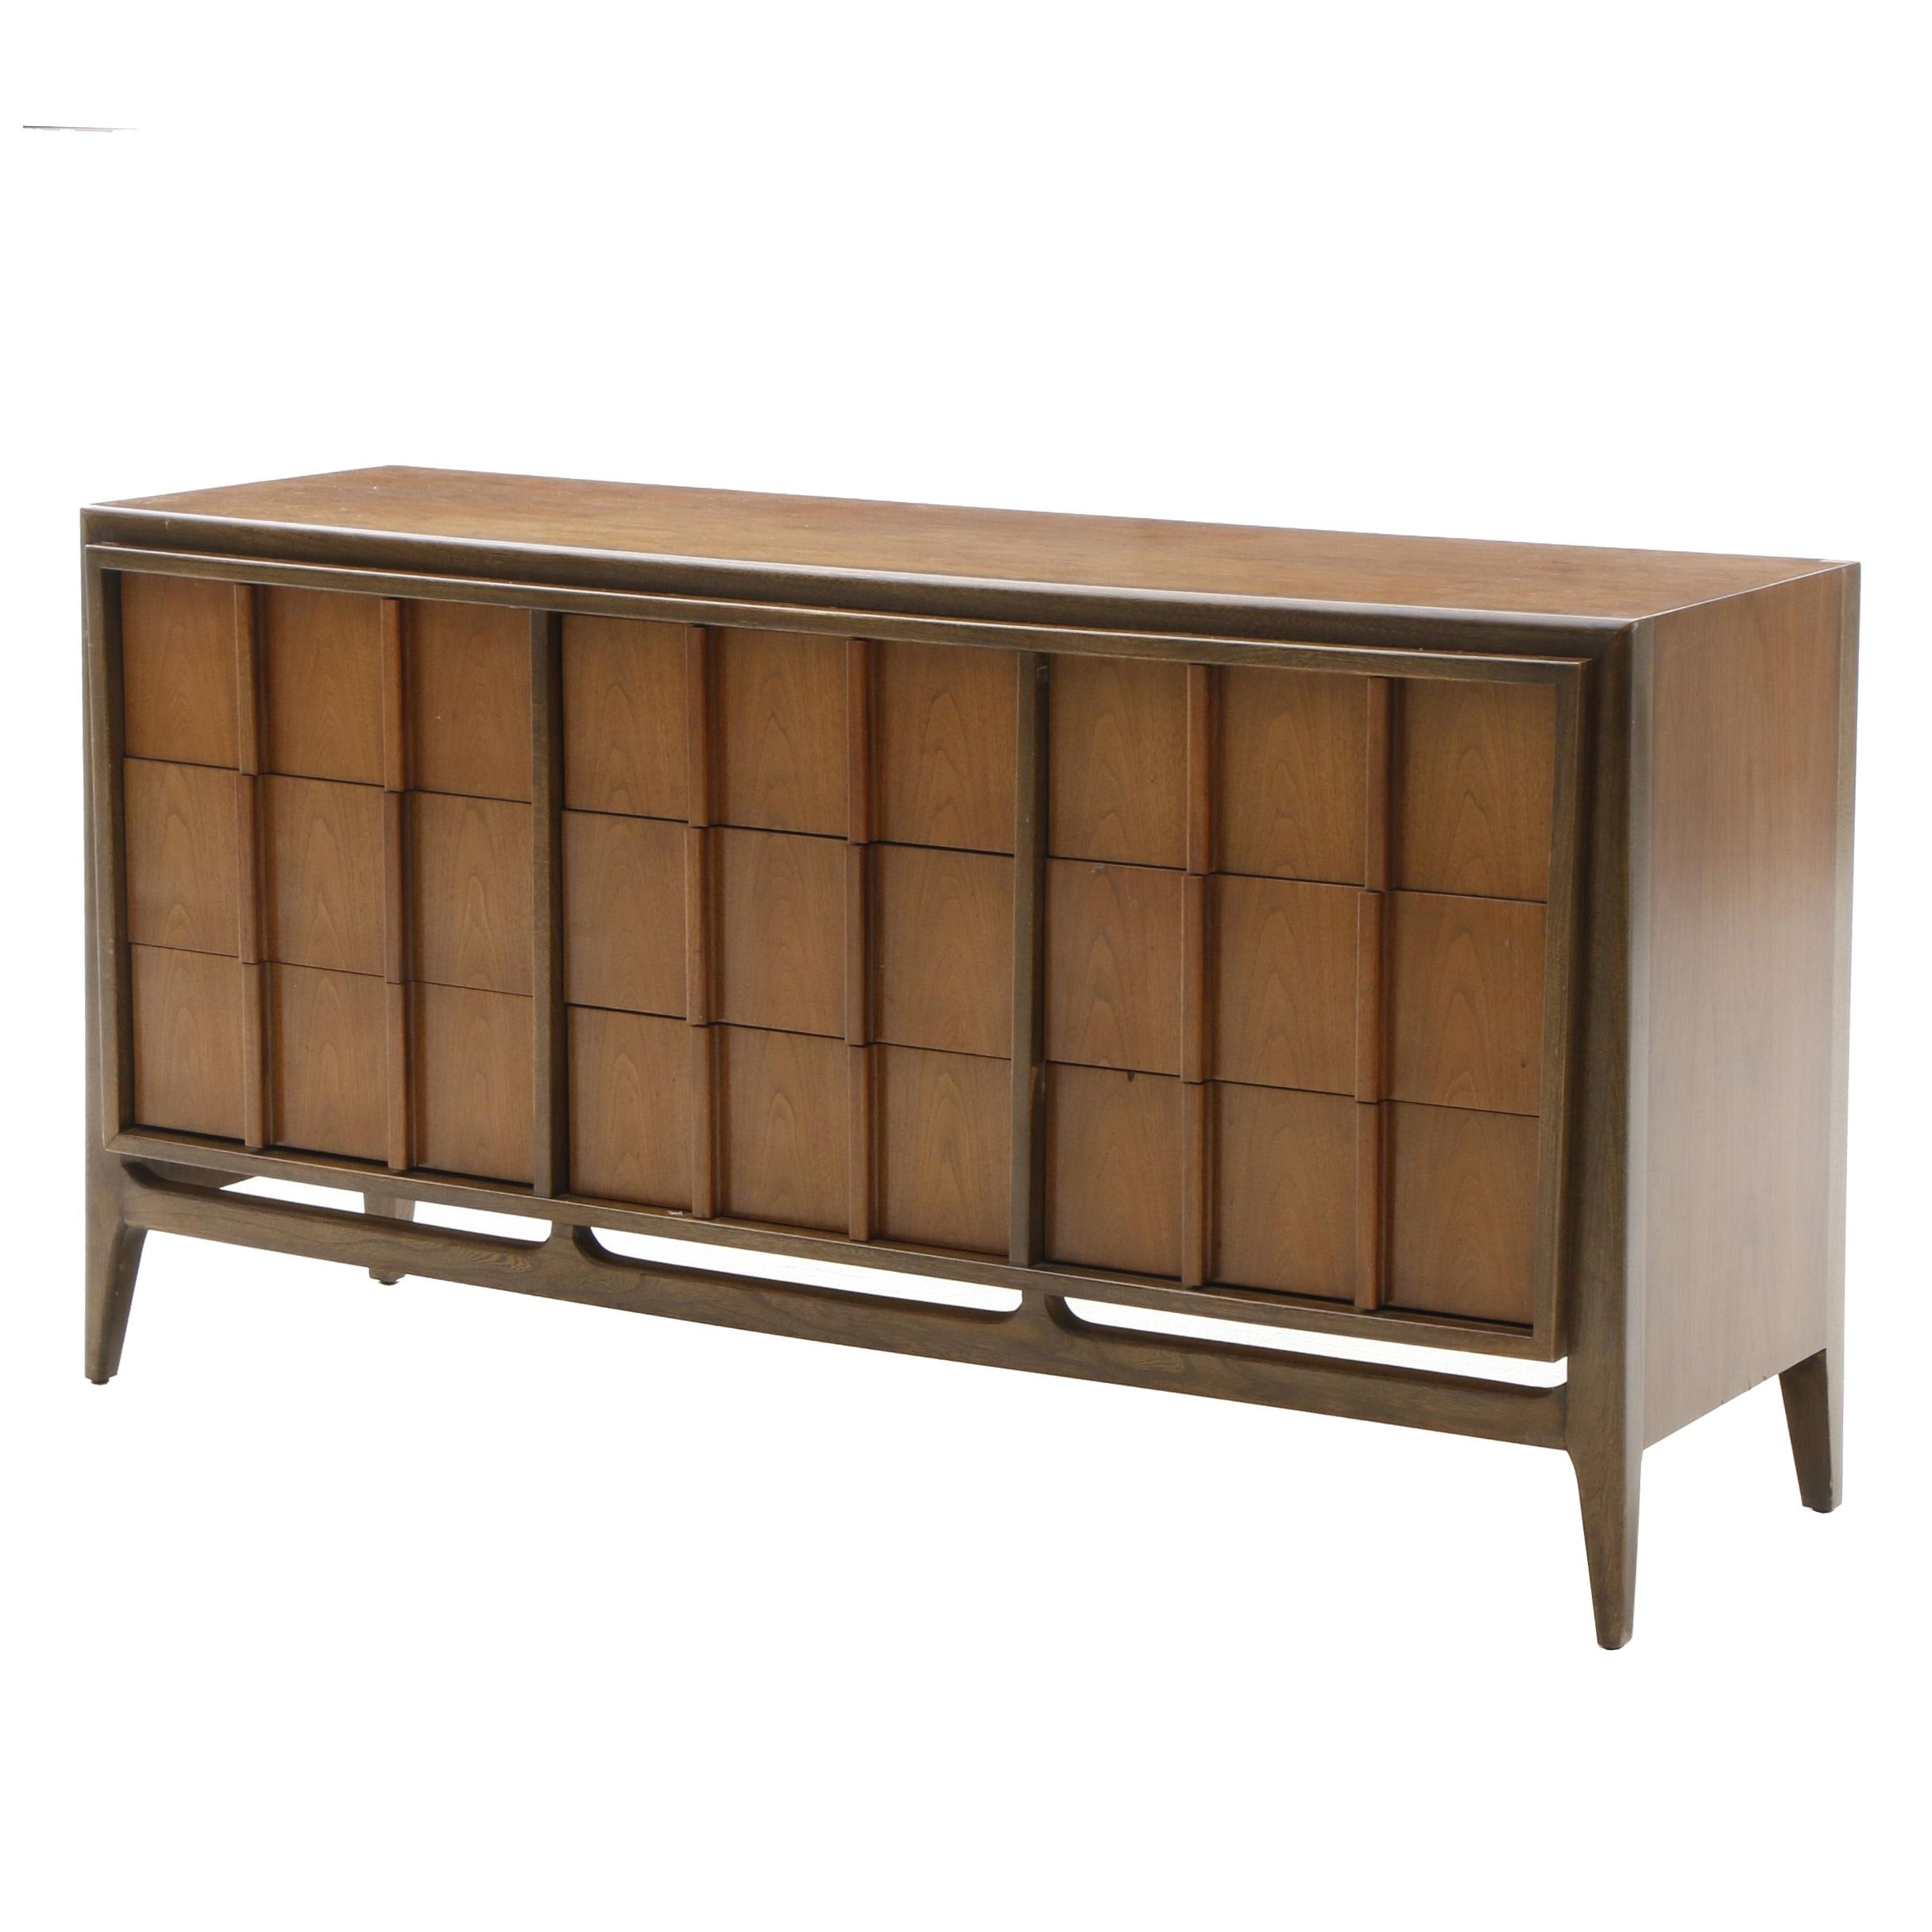 Mid-Century Modern Walnut Chest of Drawers by Sieling Furniture